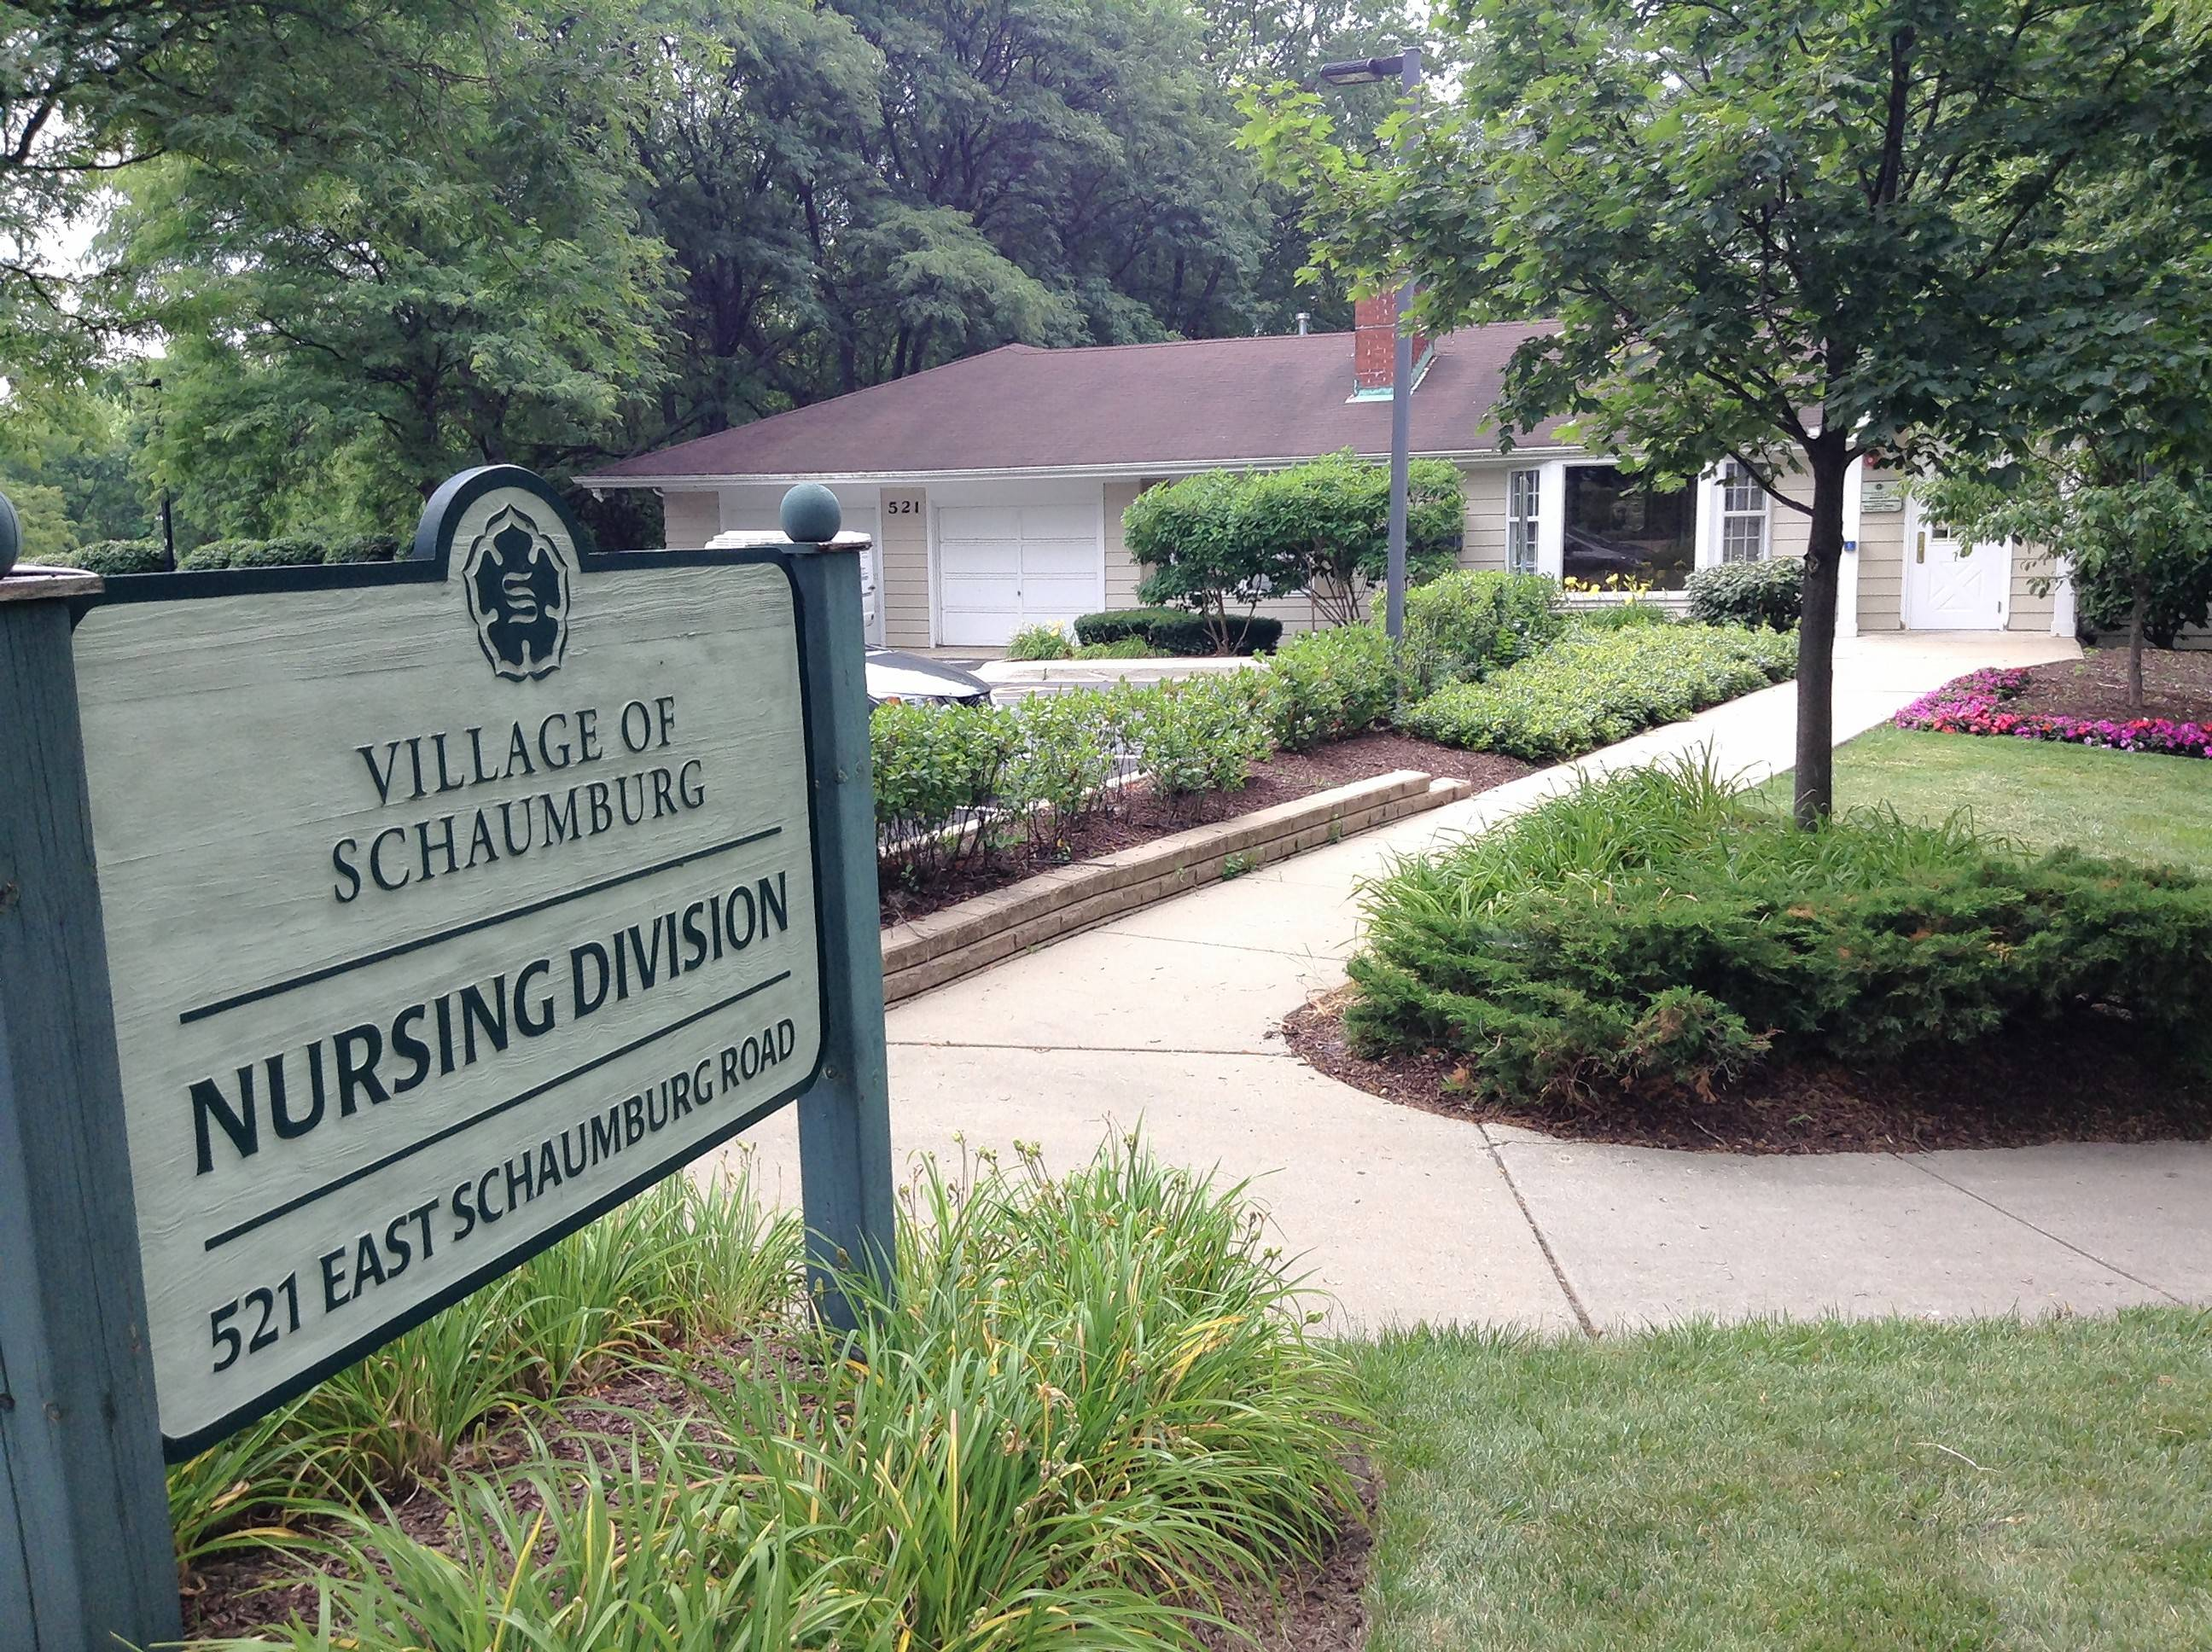 Schaumburg trustees voted 5-1 during a committee of the whole meeting this week to recommend relocating the village's nursing and senior services division and demolishing the approximately 70-year-old Slingerland House where it's been the past 22 years.